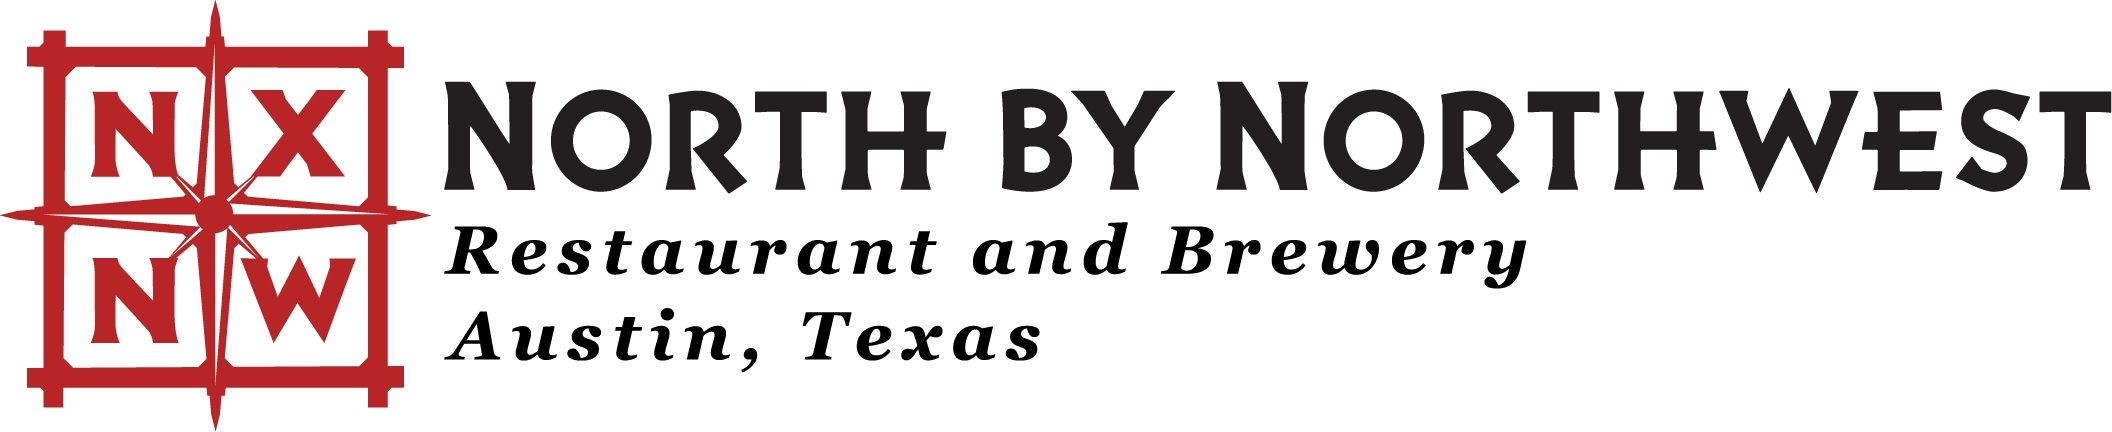 North by northwest restaurant and brewery north by